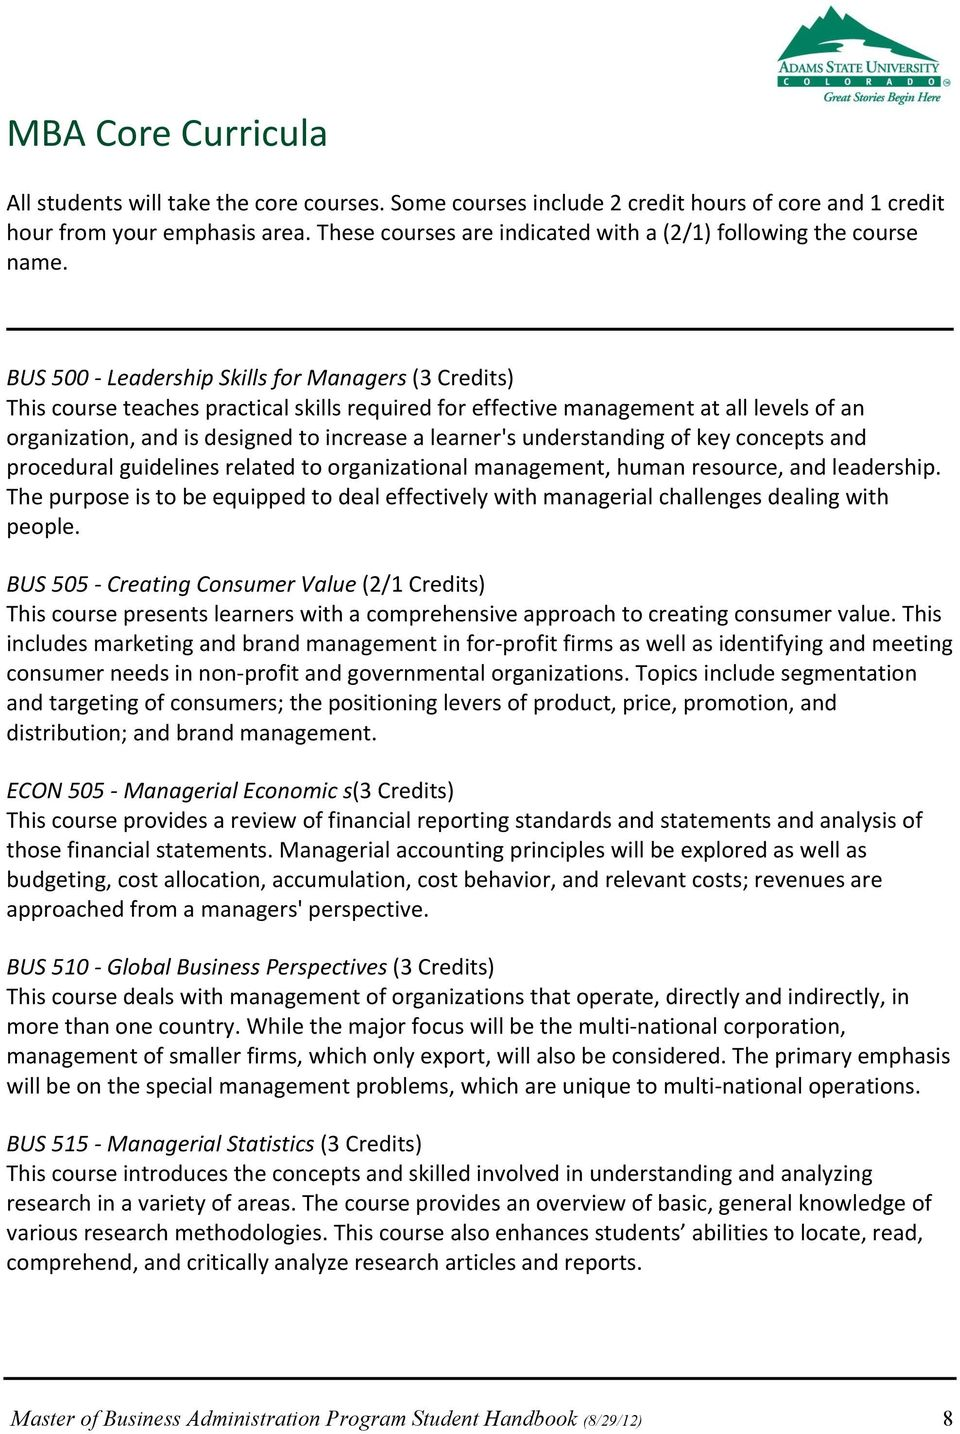 BUS 500 - Leadership Skills for Managers (3 Credits) This course teaches practical skills required for effective management at all levels of an organization, and is designed to increase a learner's